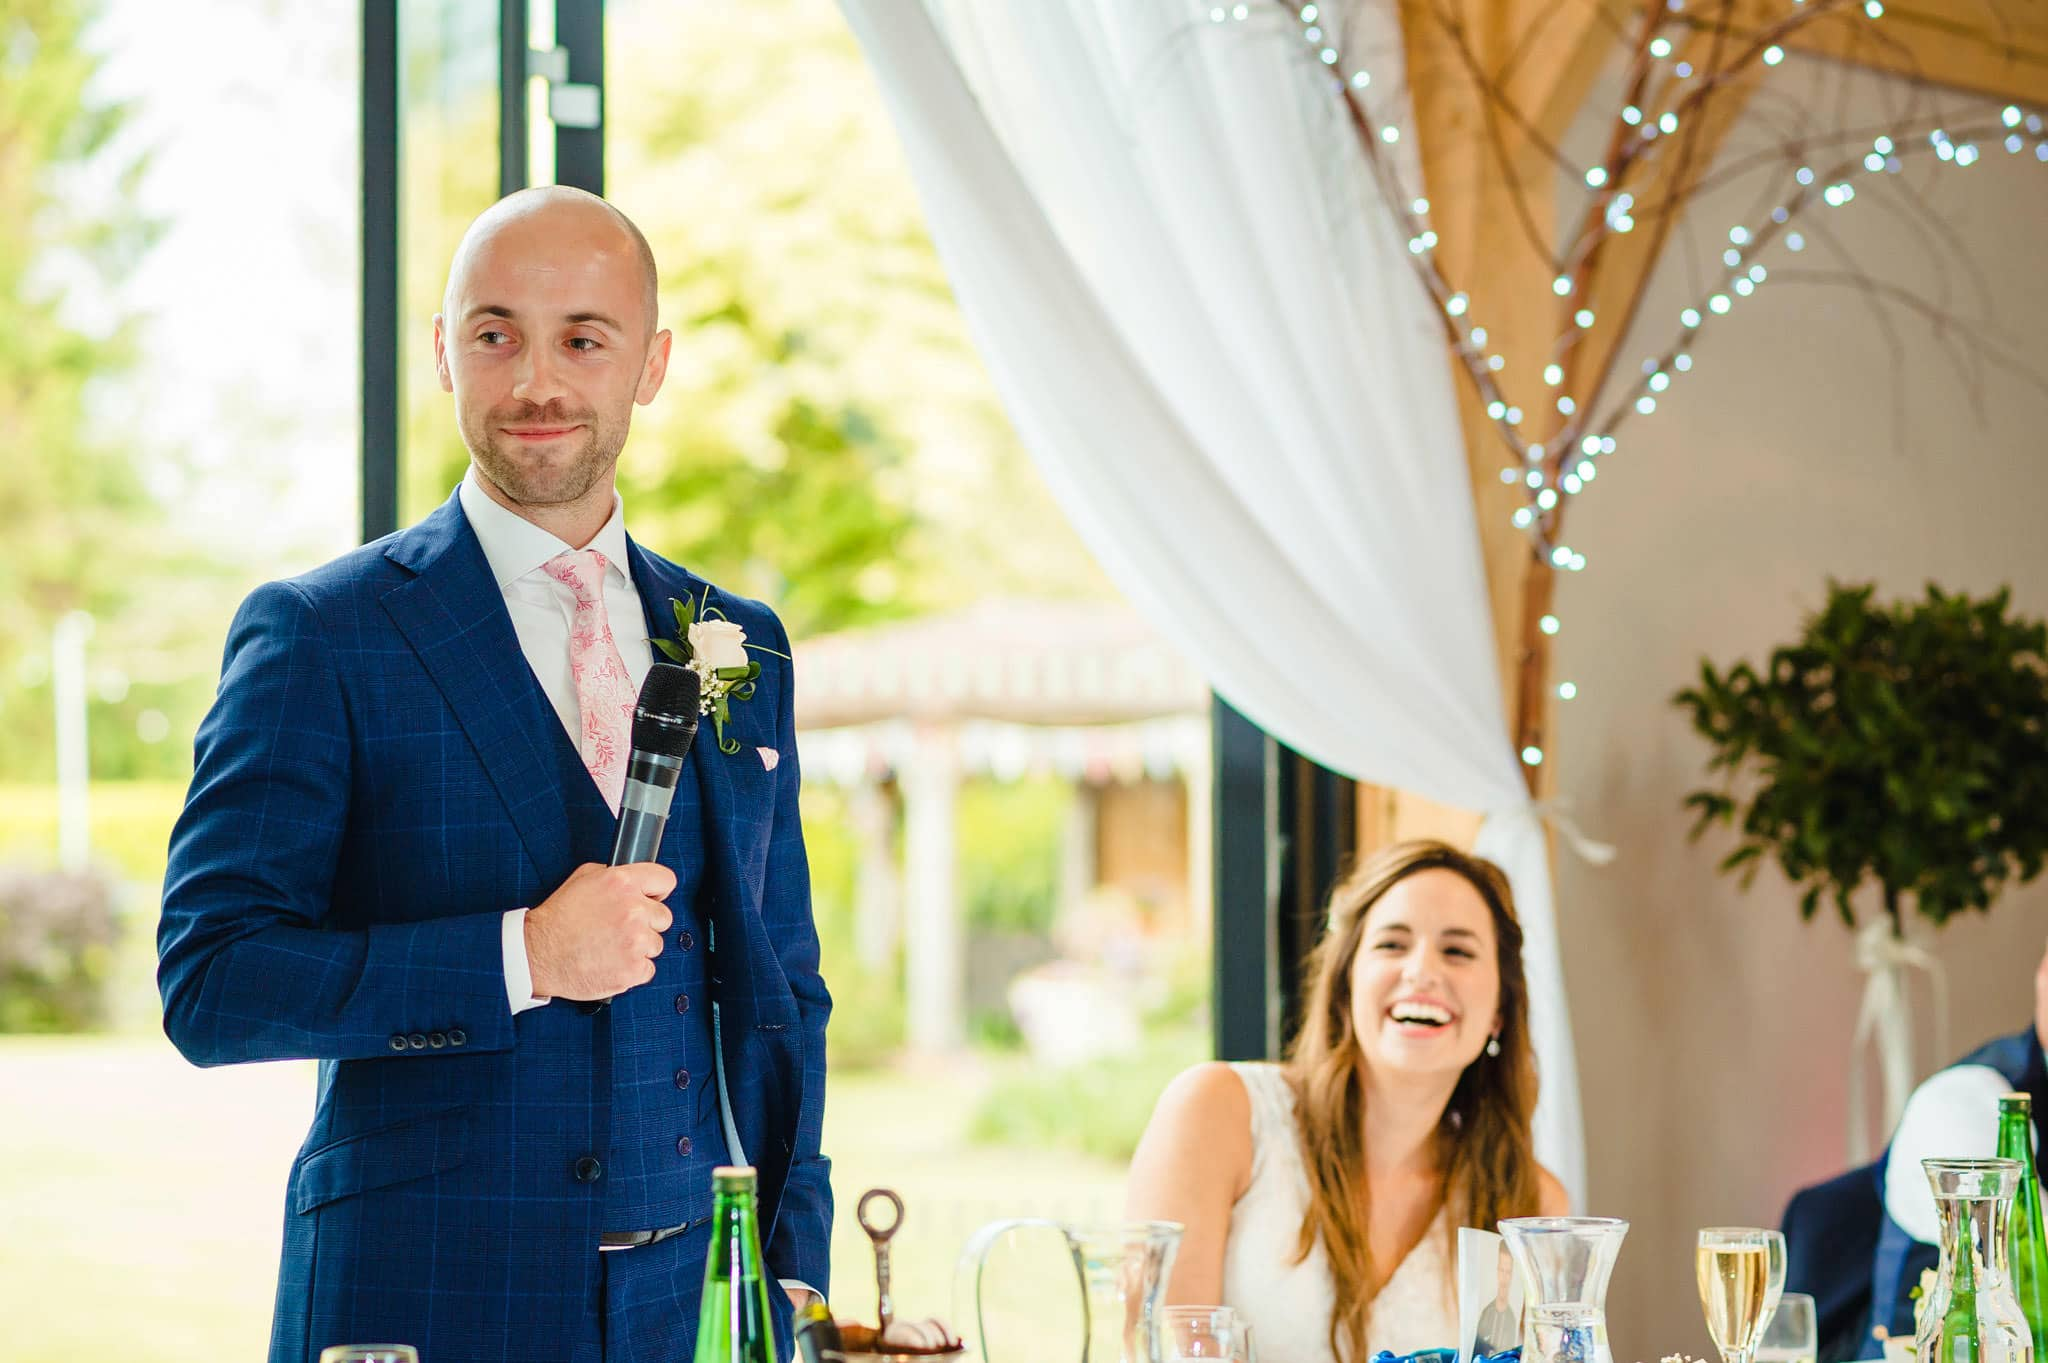 Wedding at Redhouse Barn in Stoke Prior, Worcestershire 137